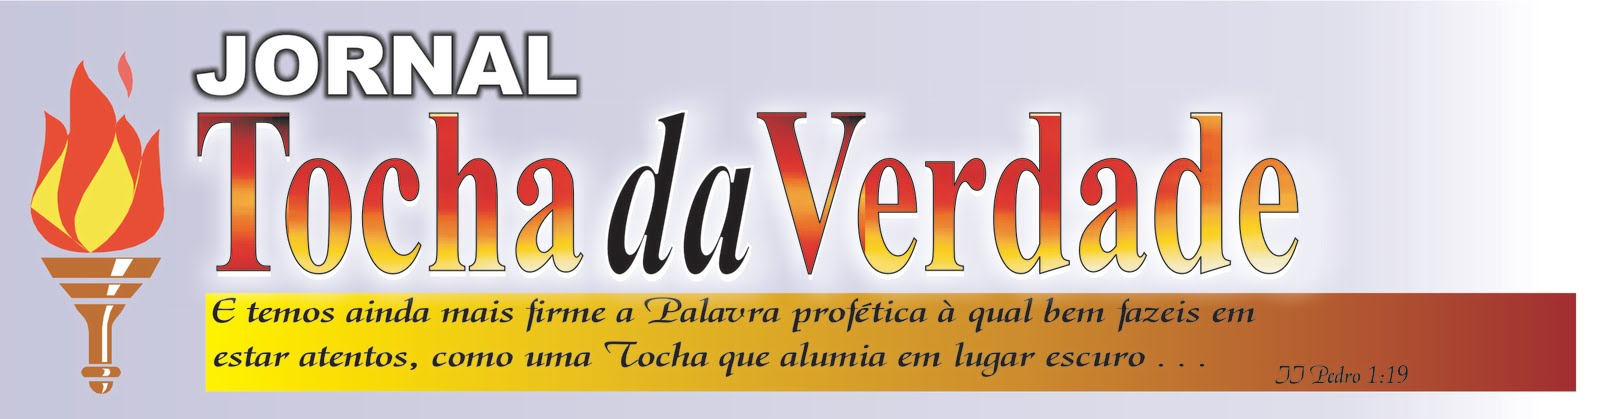 Jornal Tocha da Verdade